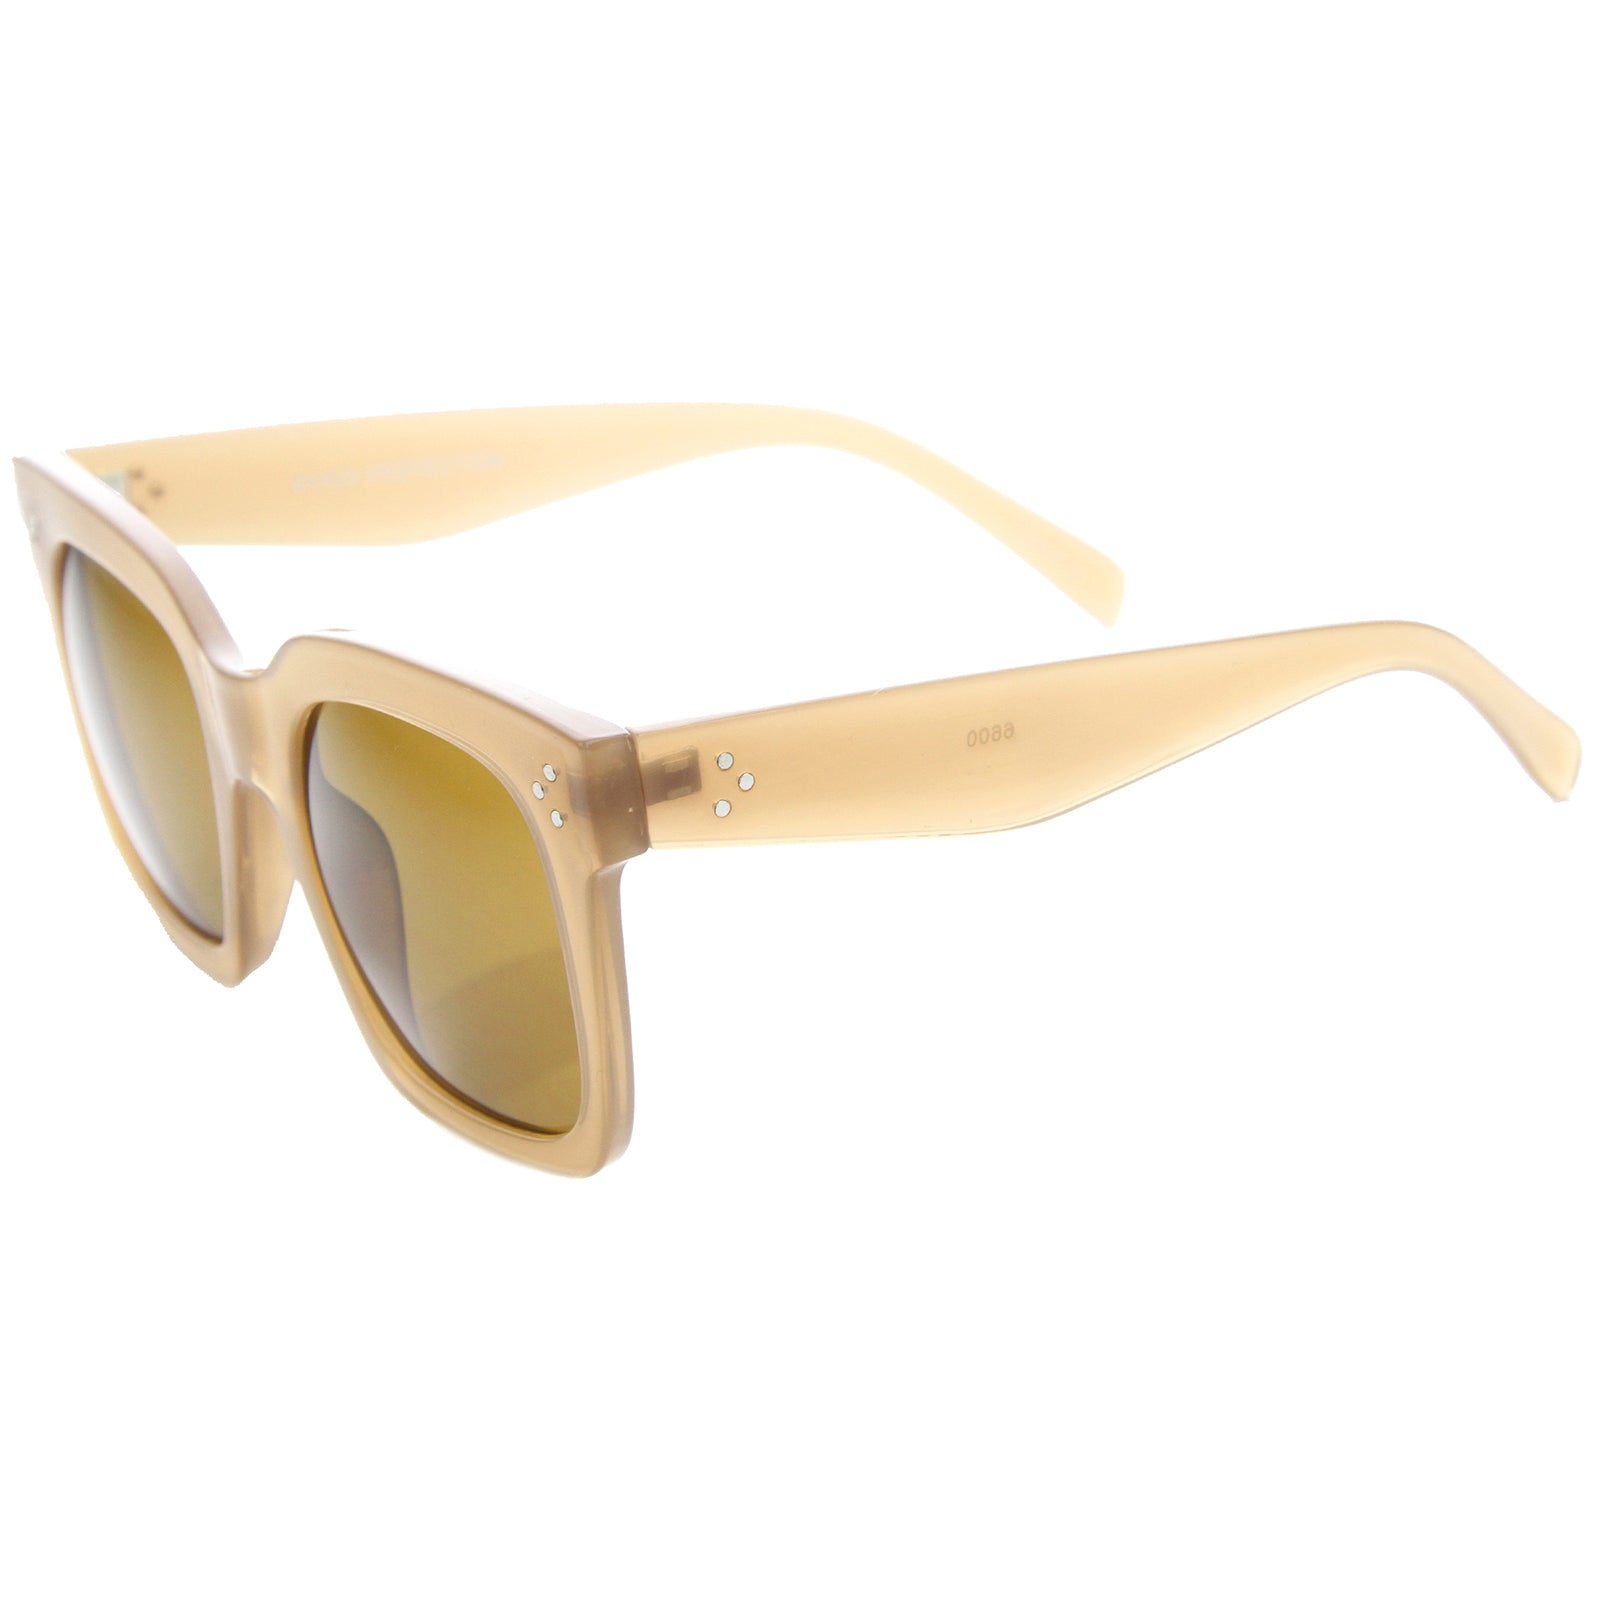 Womens Horn Rimmed Sunglasses With UV400 Protected Gradient Lens - sunglass.la - 15